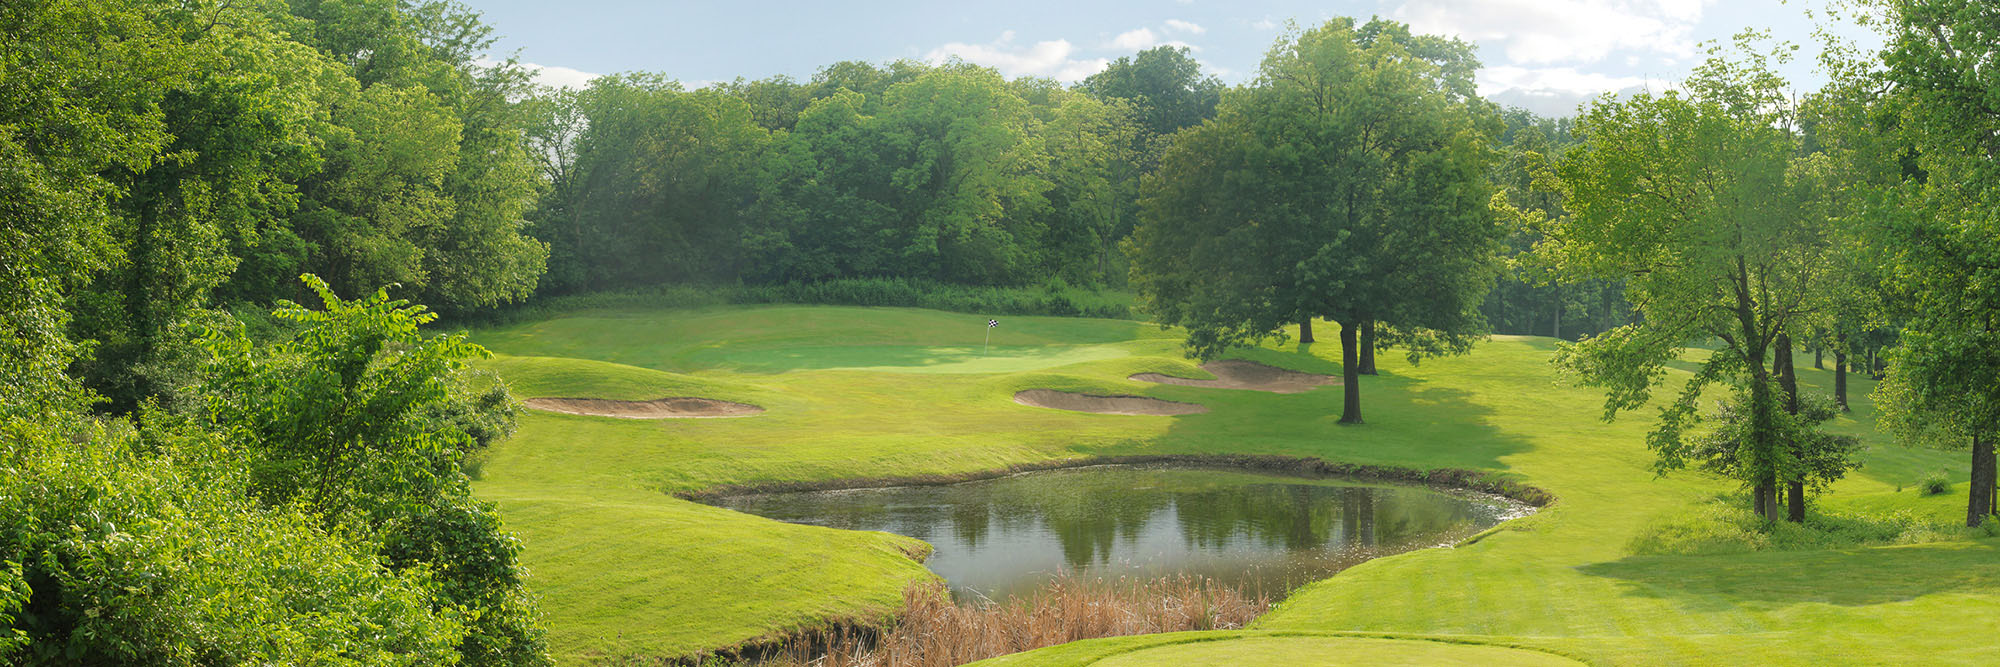 Golf Course Image - Oakwood Country Club No. 16